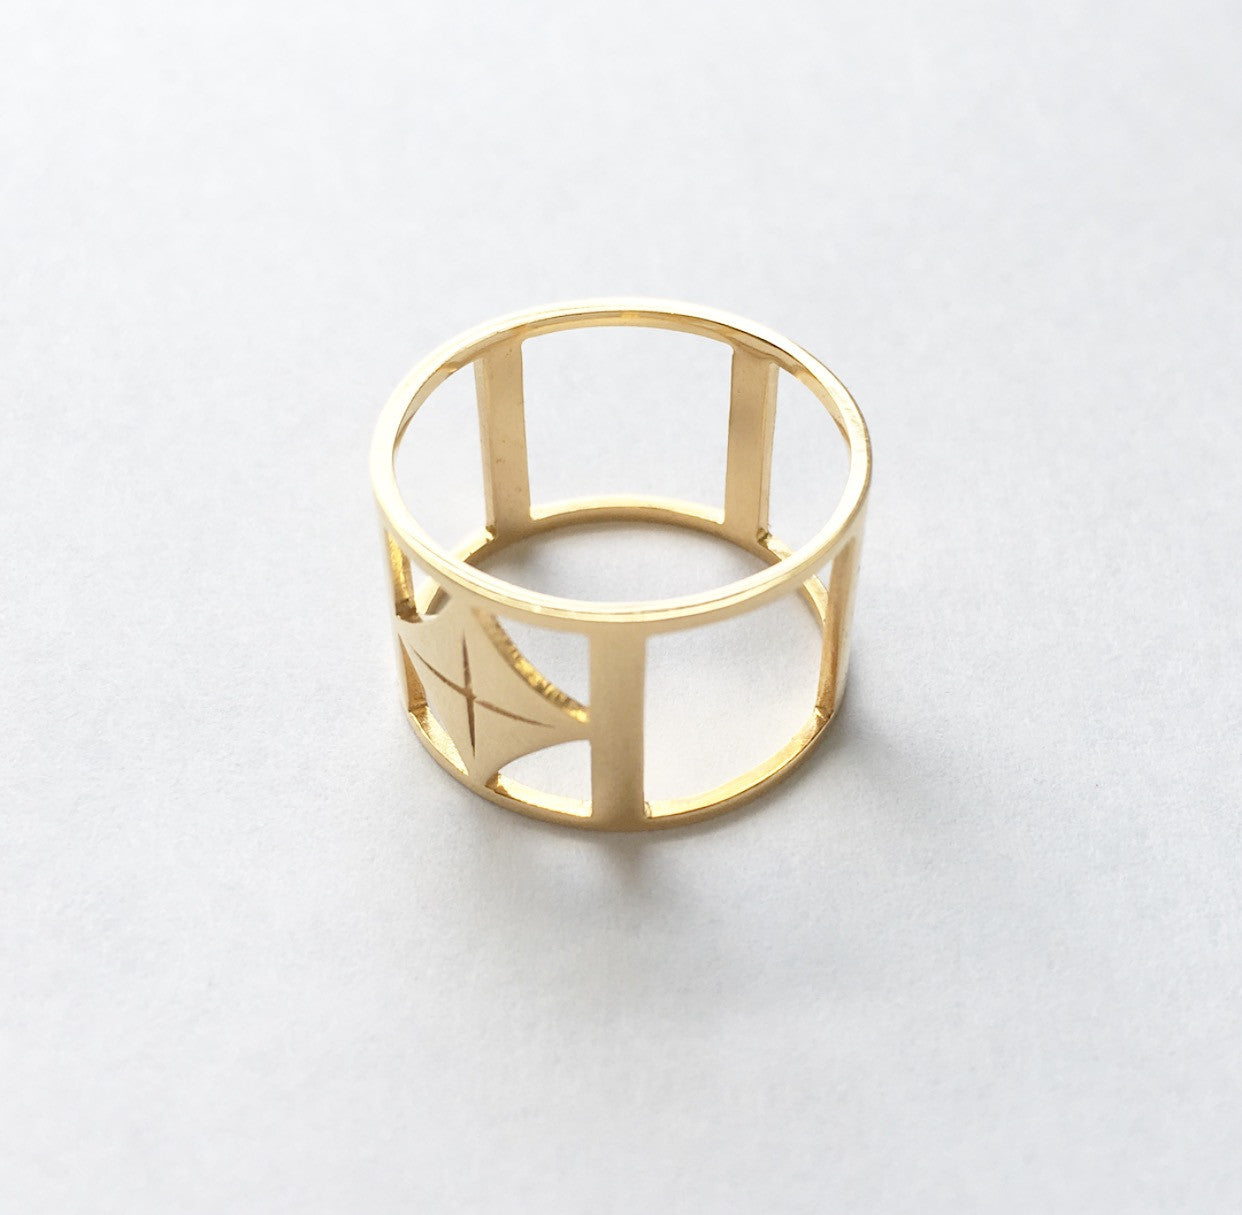 heather matjasic ohm jewelry ohmjewelryshop o.h.m. gold ring 18k gold plated 14k gold